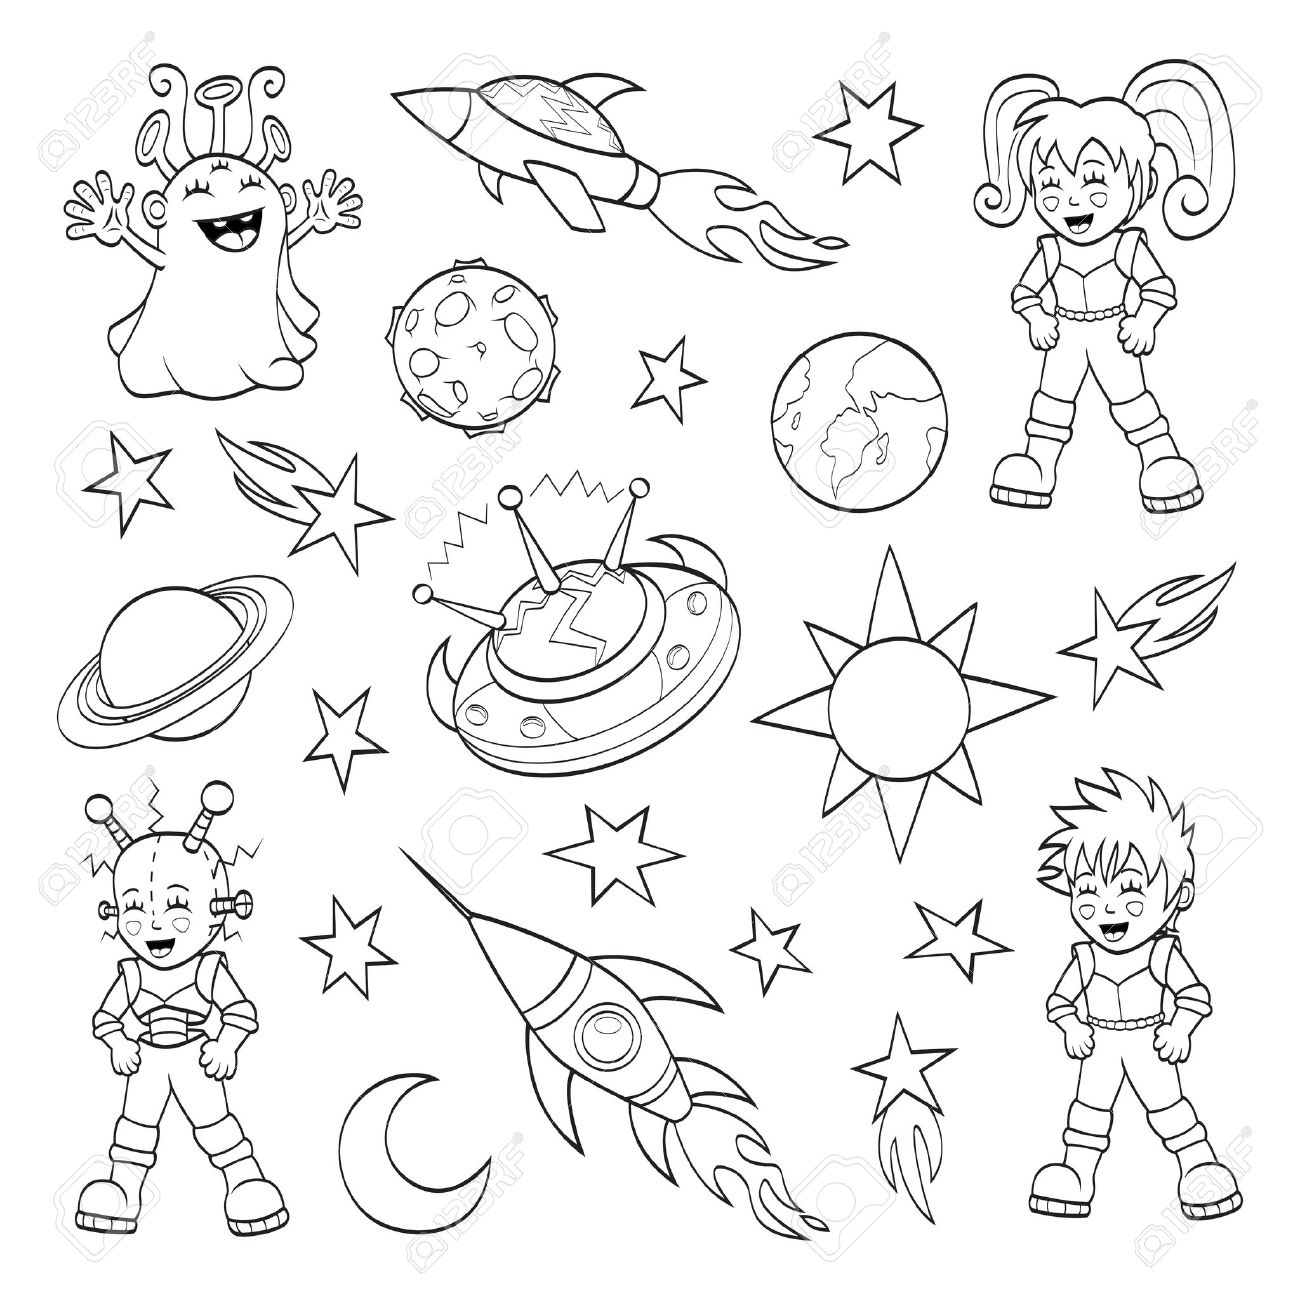 Cartoon Outer Space Set Coloring Book Royalty Free Cliparts, Vectors ...